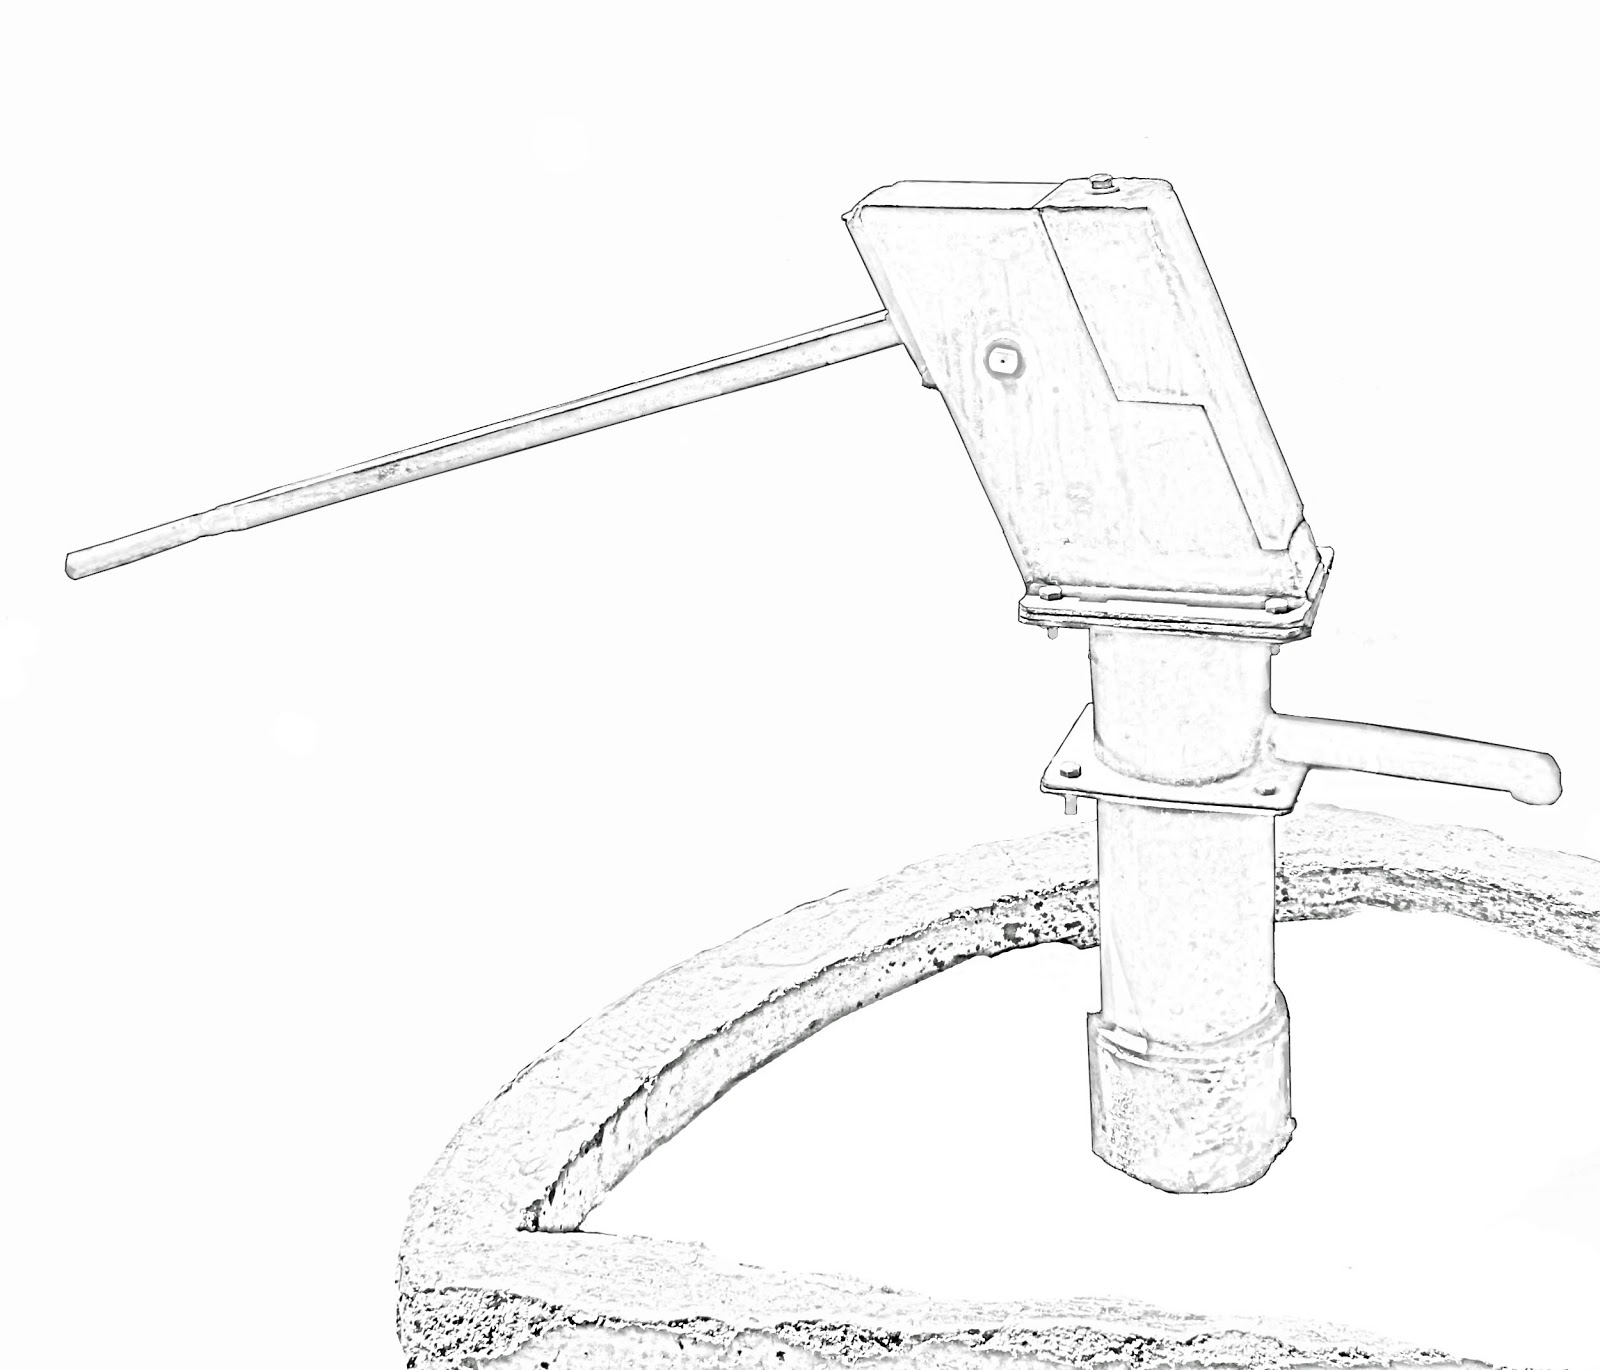 Stock Pictures: Hand Pump Sketch and Line Drawing